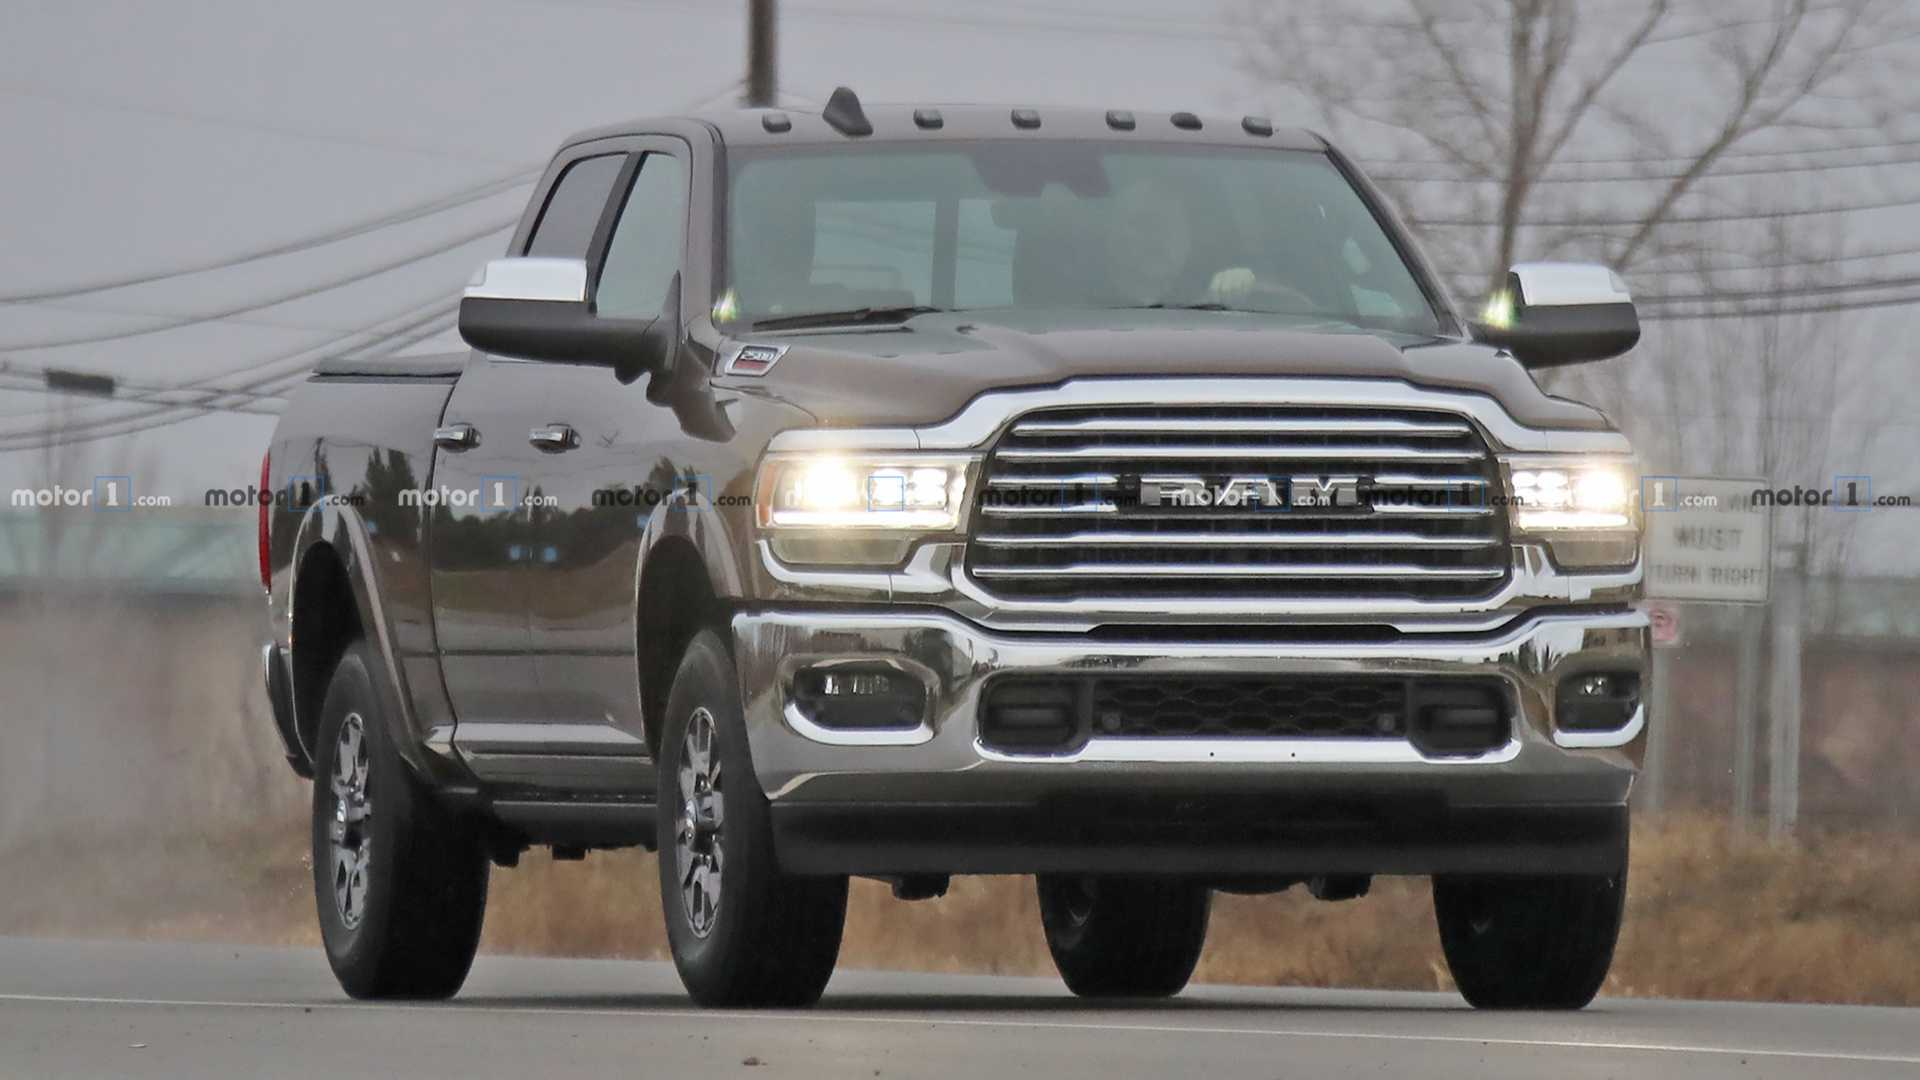 ram-2500-hd-spy-photo.jpg